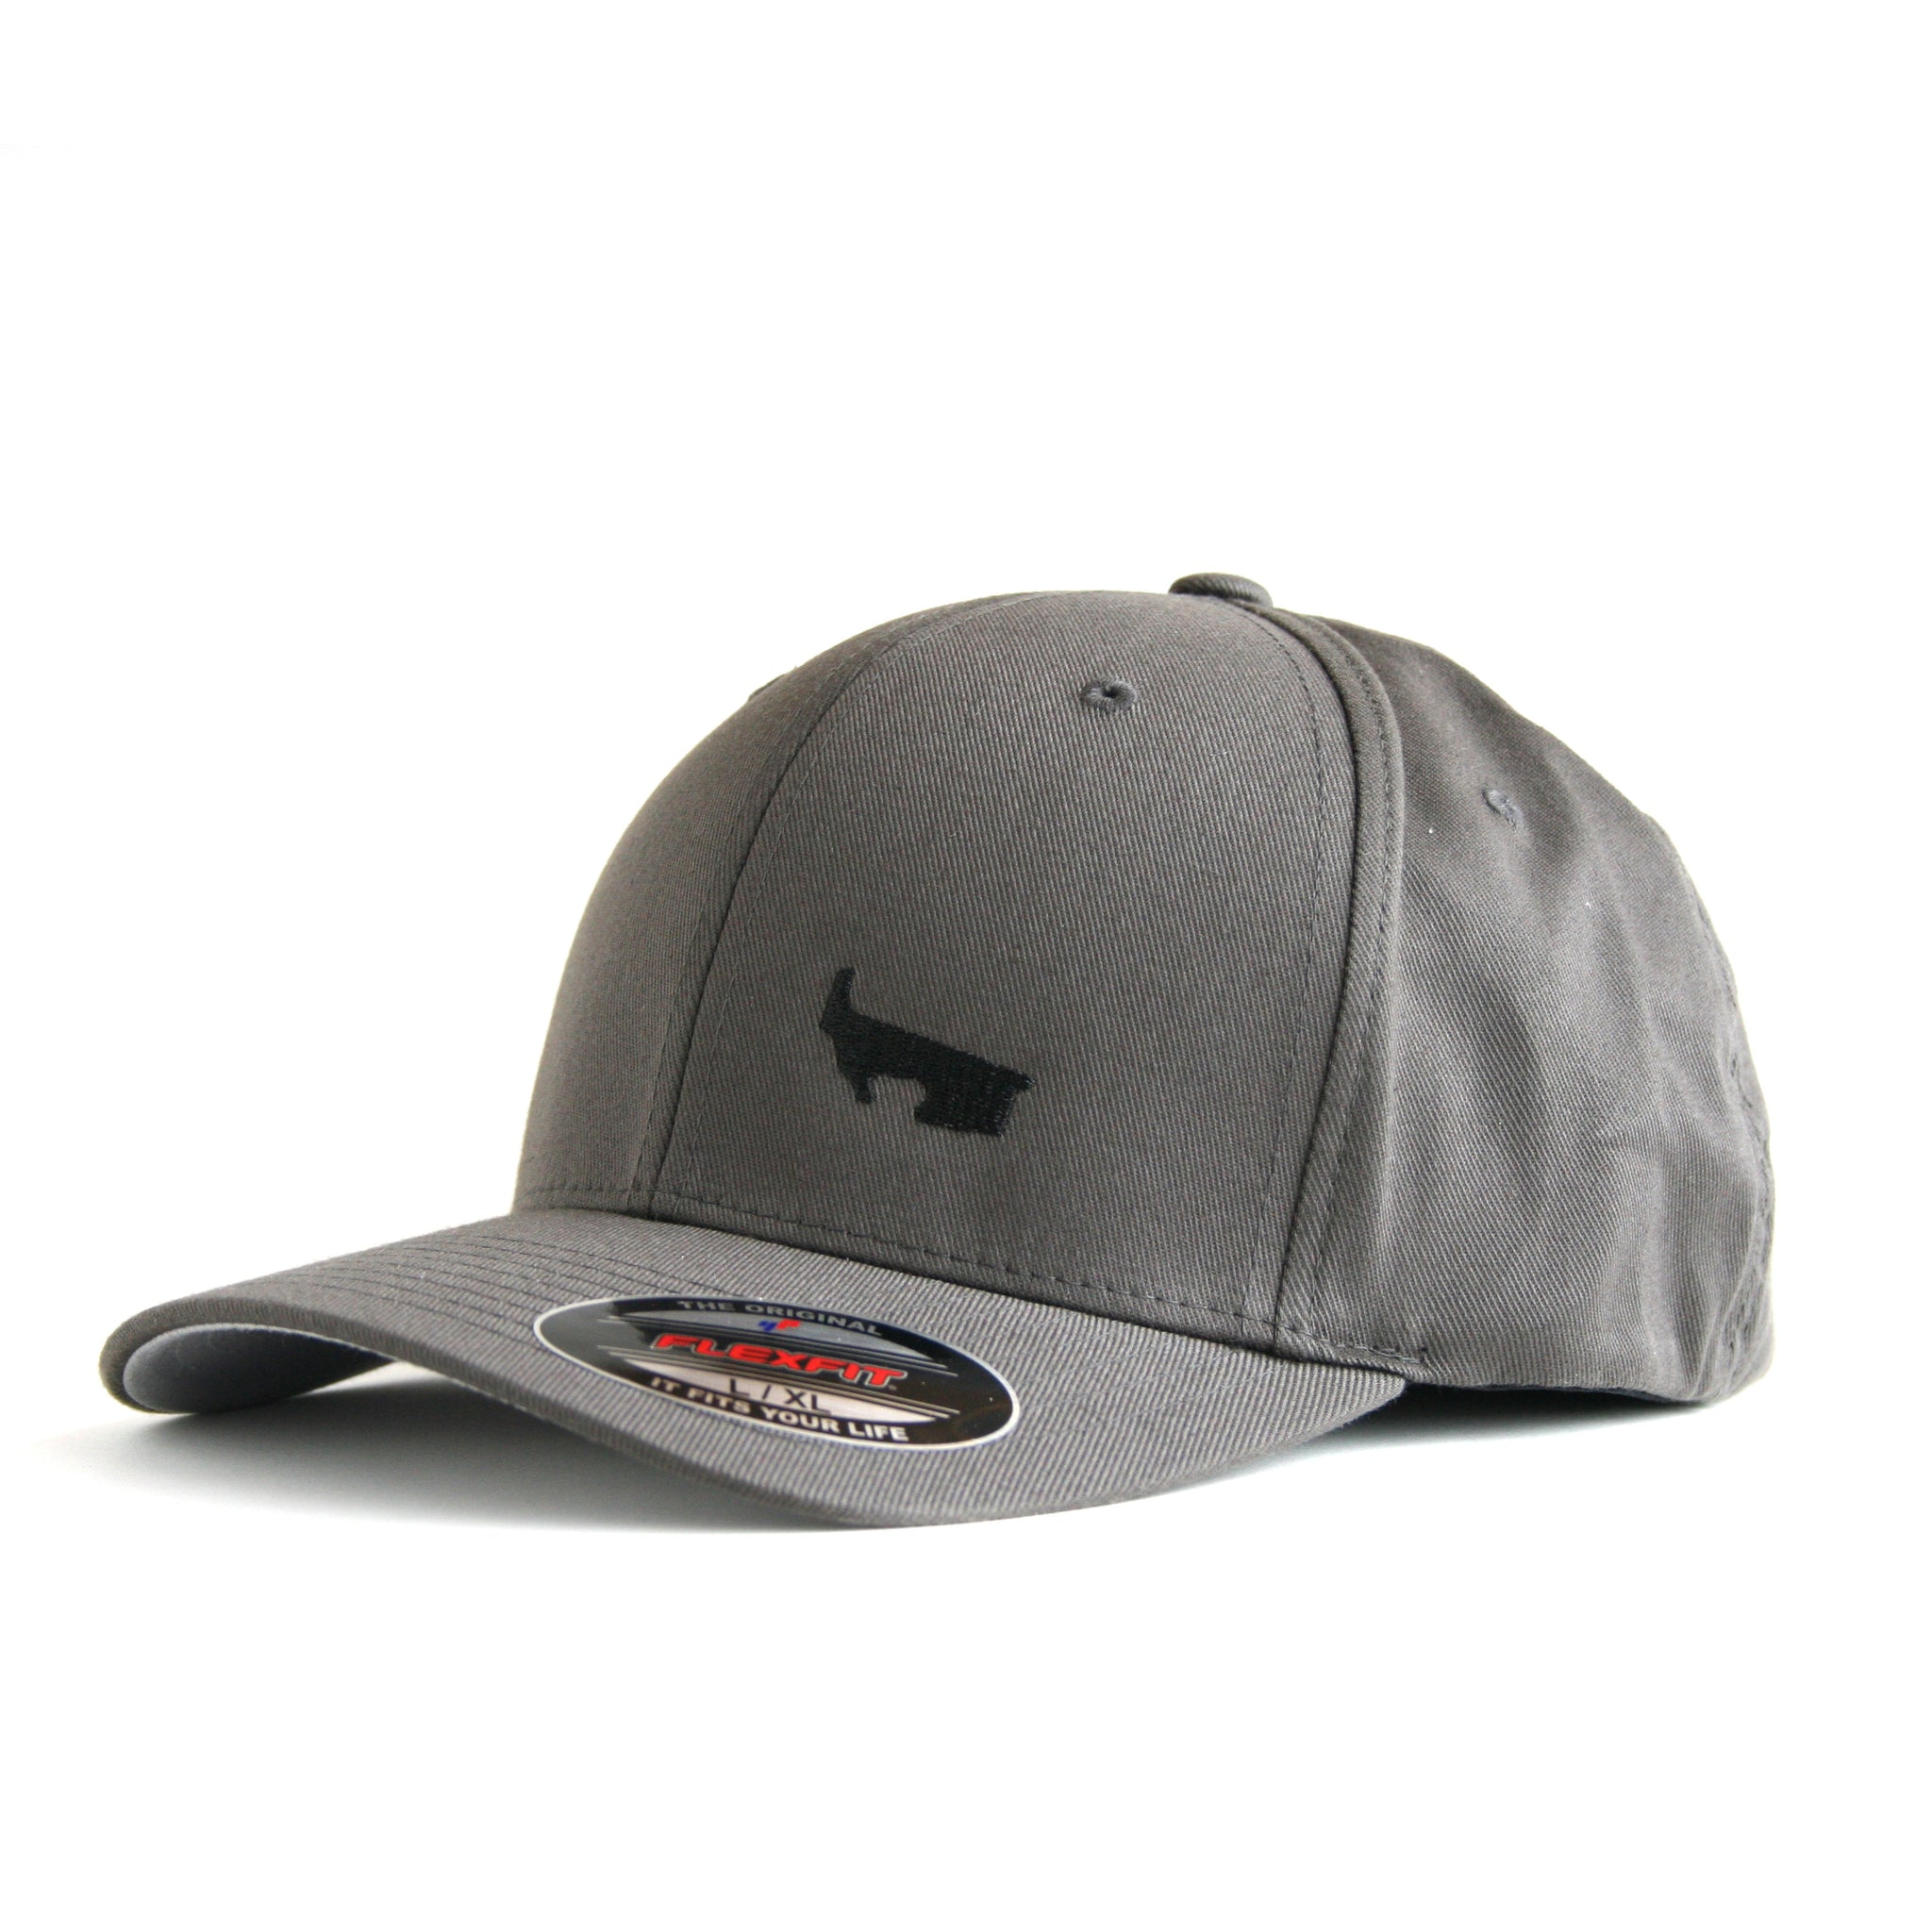 BRG Logo Hat - Dark Gray Flexfit